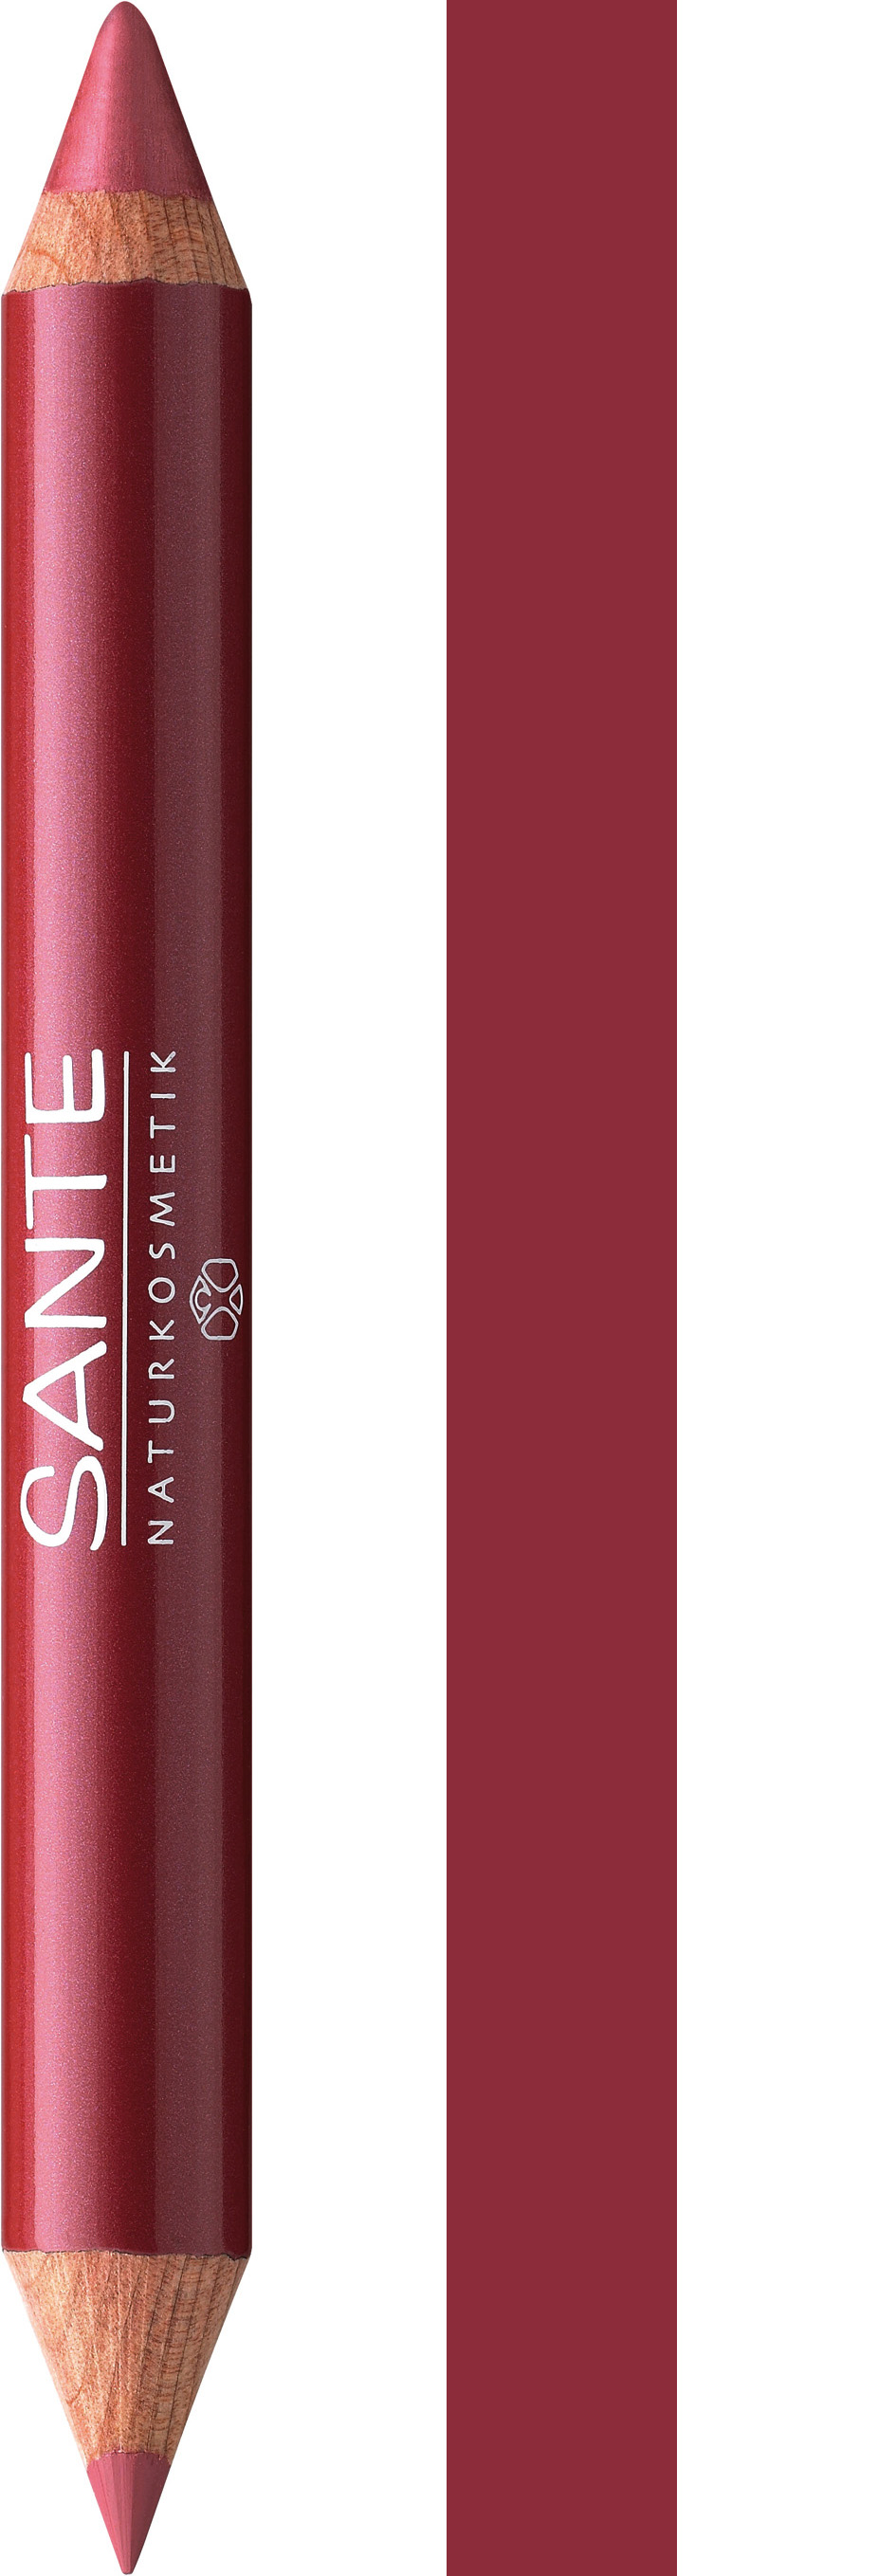 SANTE Duo Lip Contour No.02 natural look